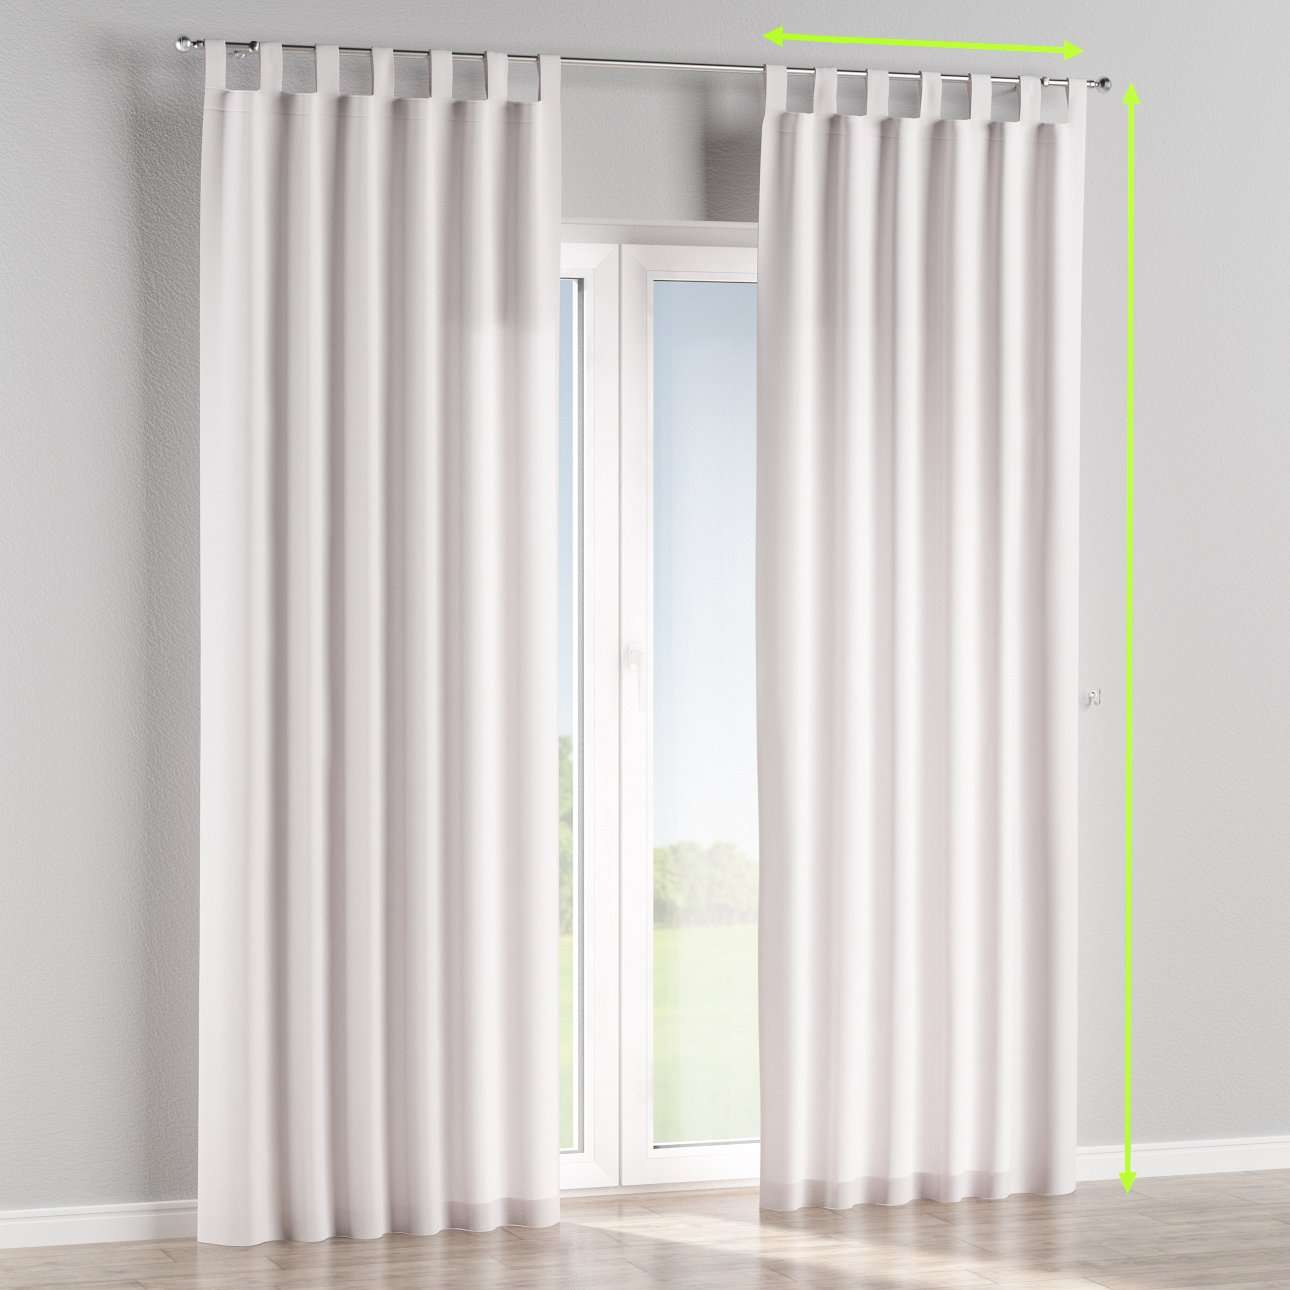 Tab top lined curtains in collection Cotton Panama, fabric: 702-34